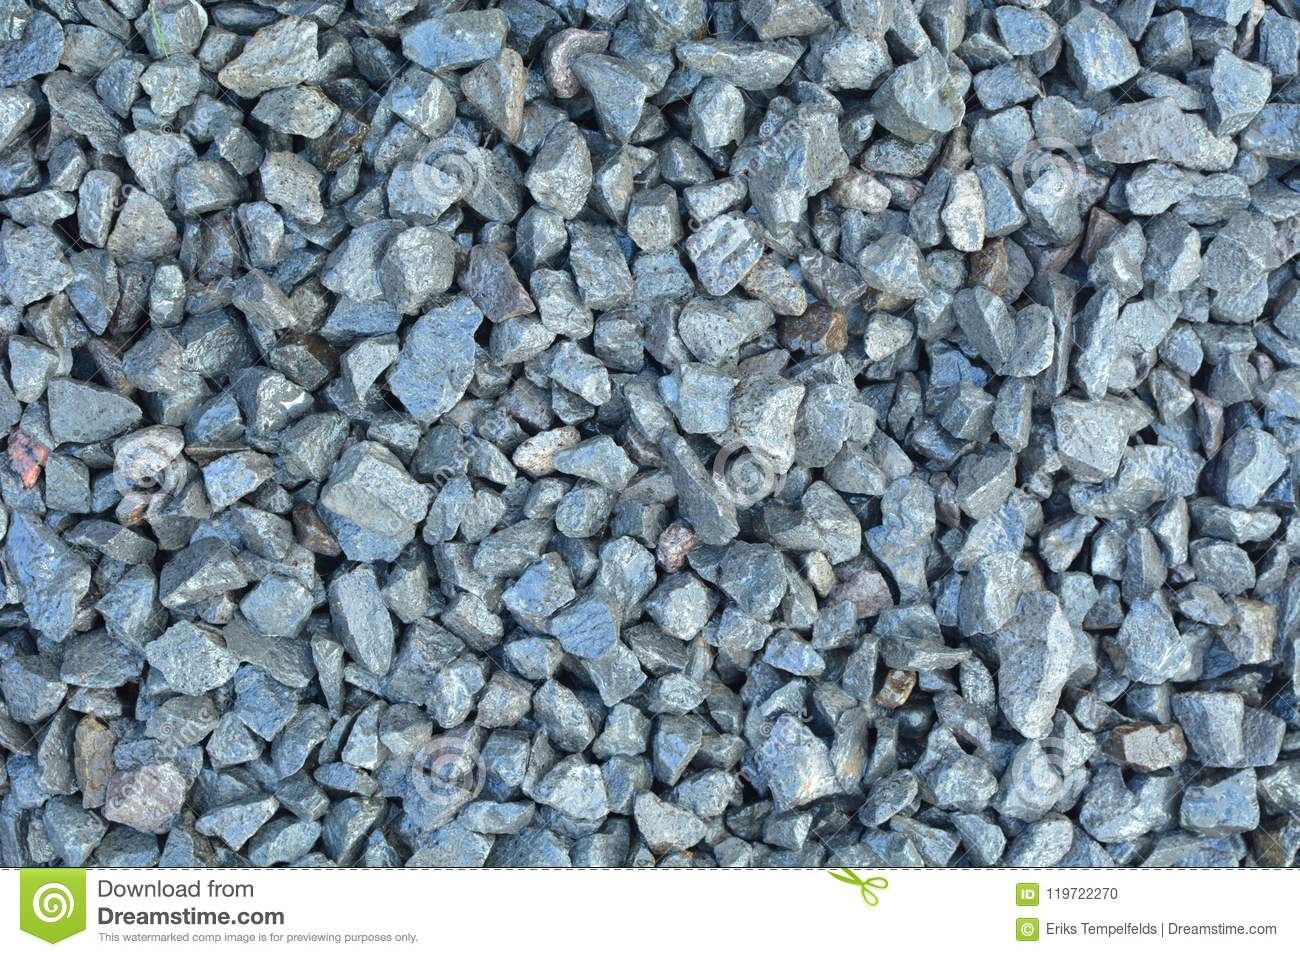 Download Pebbles And Small Stones For Garden Decoration Stock Photo   Image  Of Interior, Material